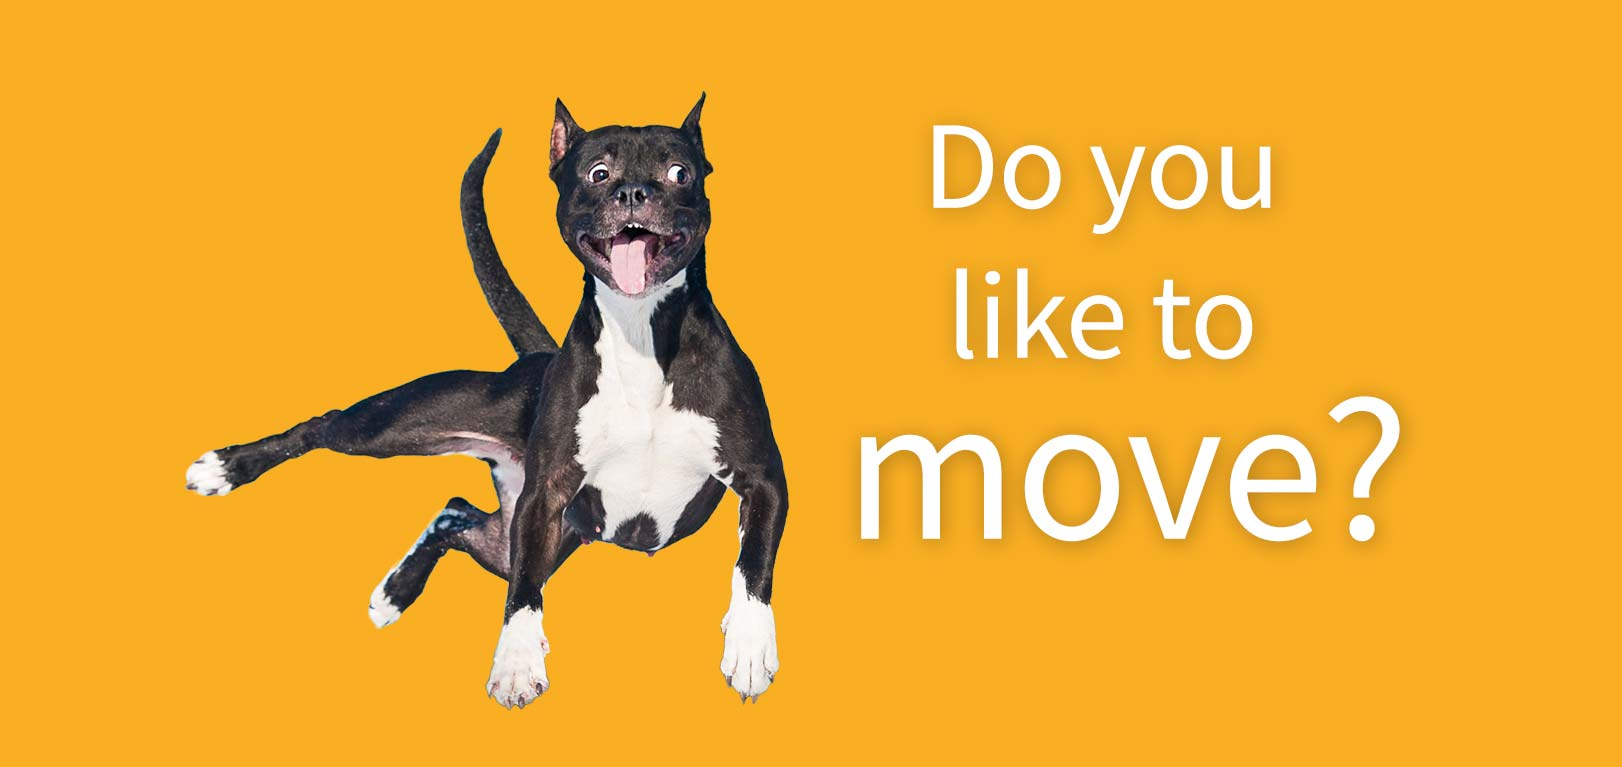 Do you Like to move it?